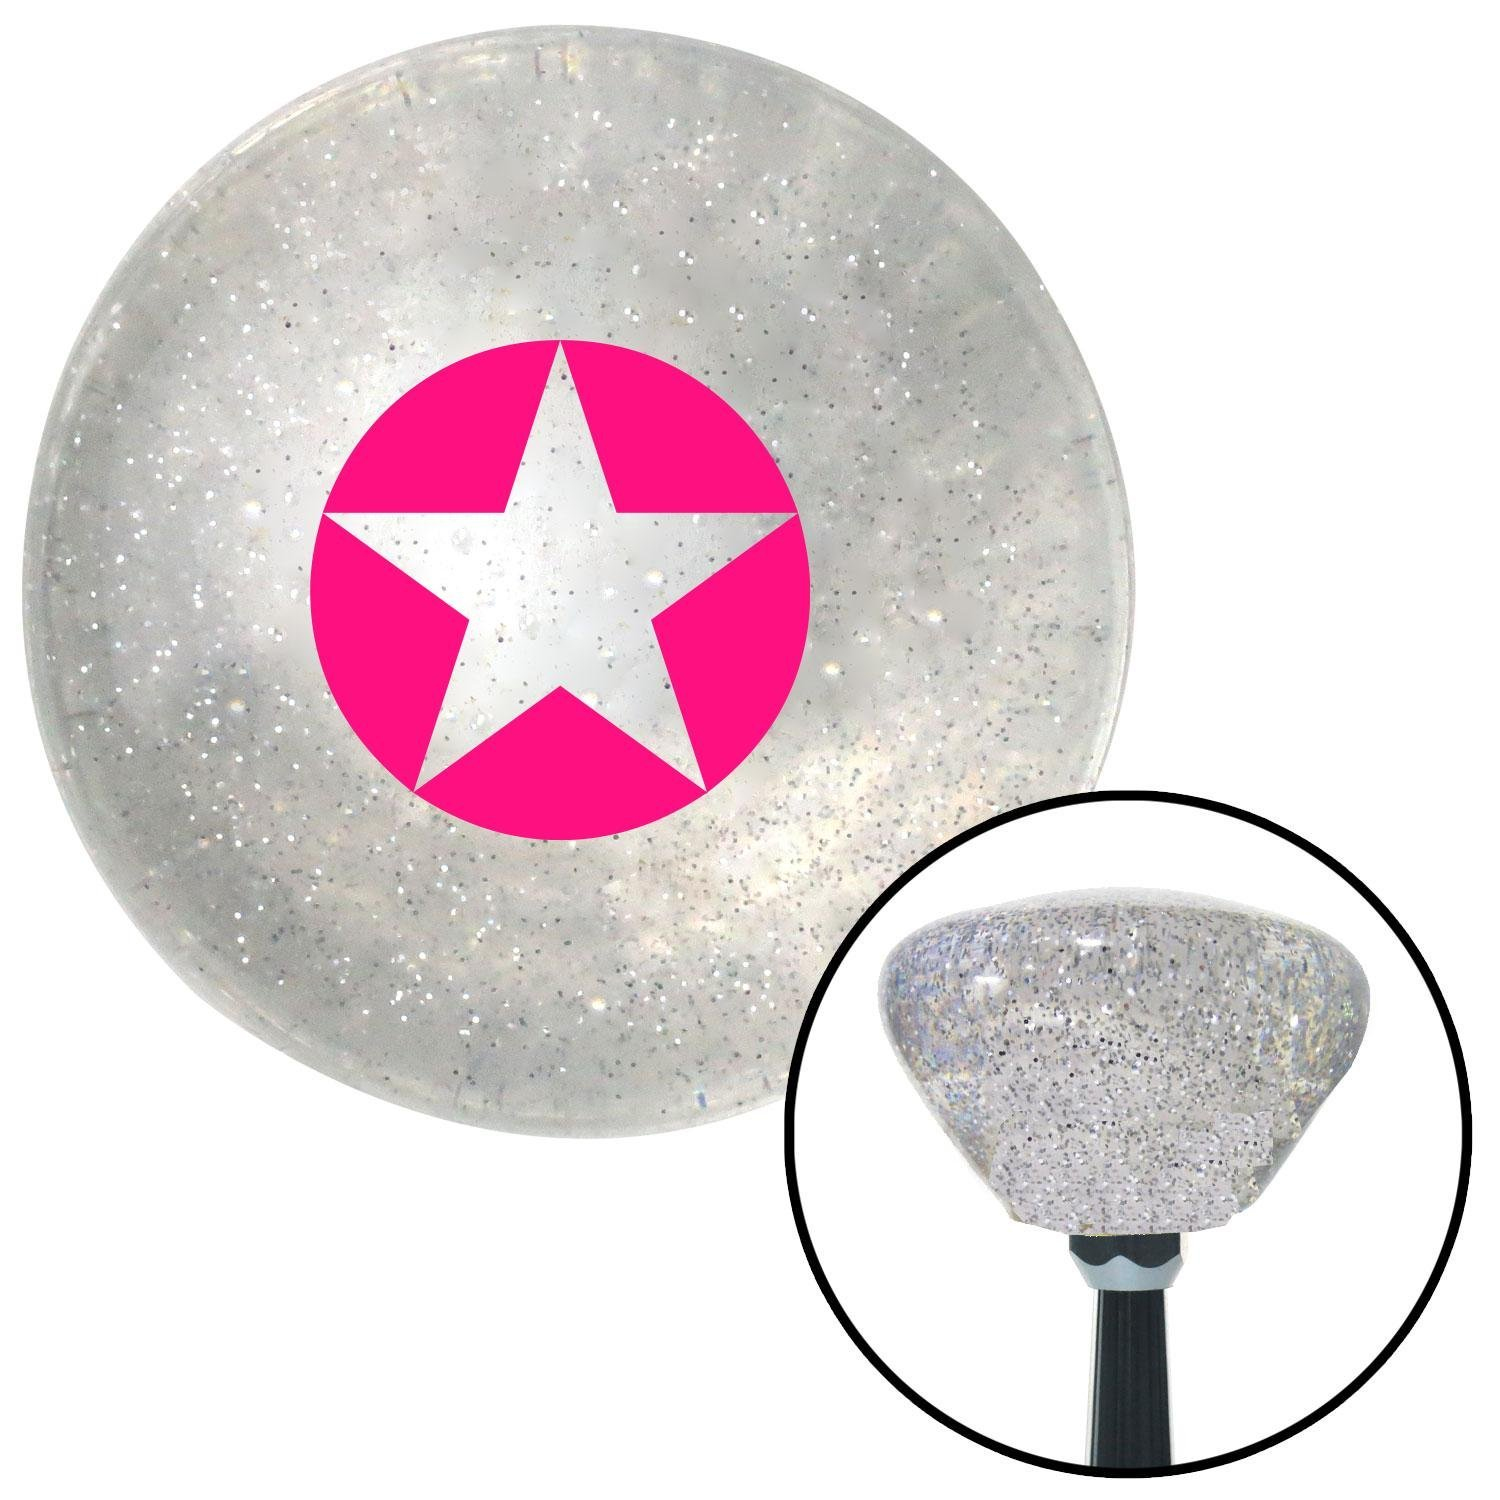 American Shifter 163376 Clear Retro Metal Flake Shift Knob with M16 x 1.5 Insert Pink Star in Circle Outline